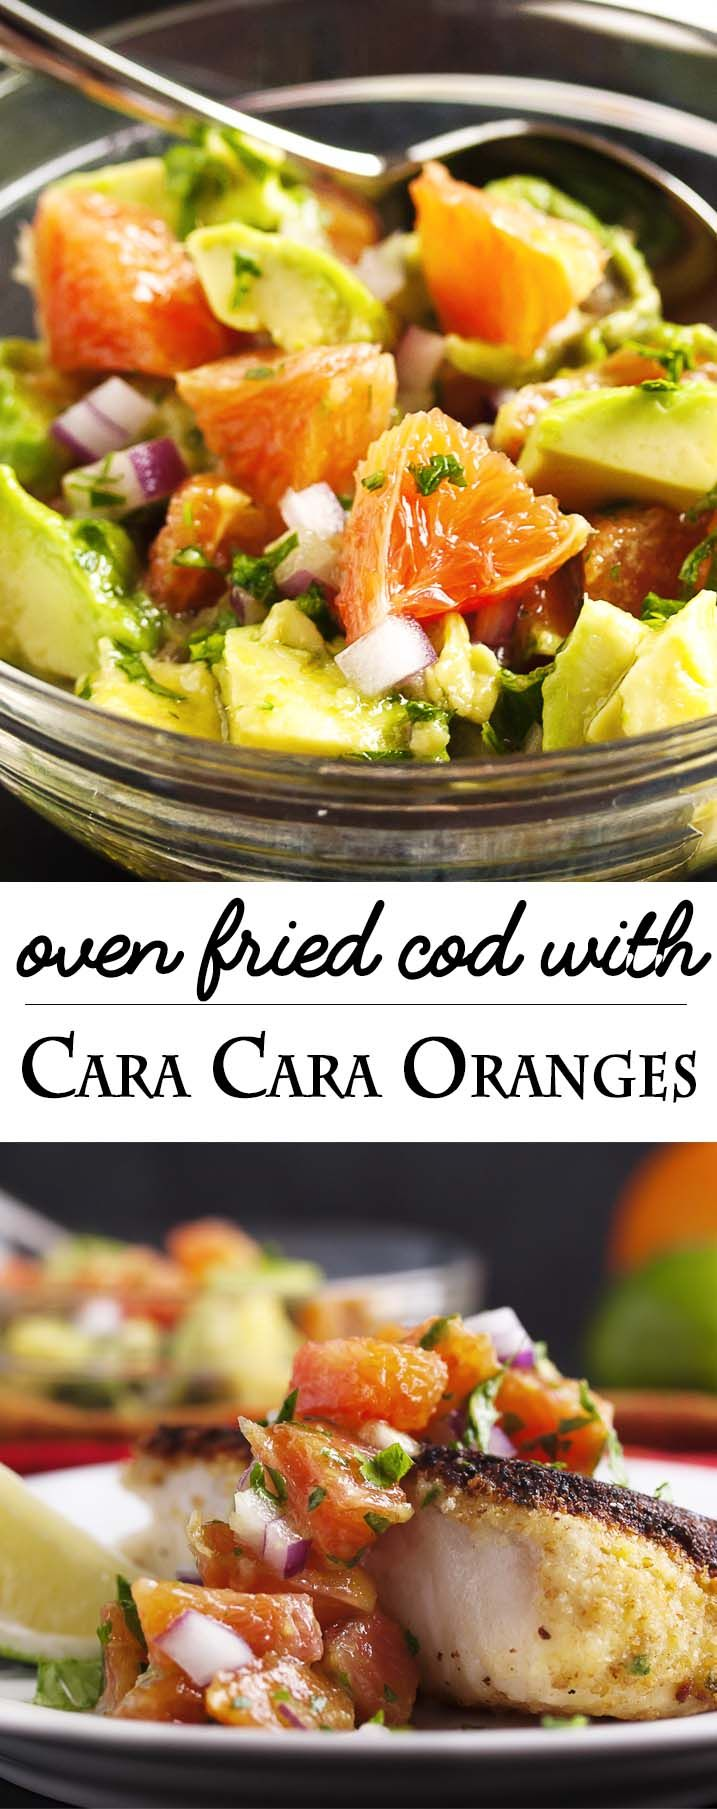 Oven Fried Cod with Cara Cara Oranges - Thick-cut cod is breaded on one side, browned on the stove top and finished in the oven before being topped with a Cara Cara orange and avocado salsa. Yum! | justalittlebitofbacon.com